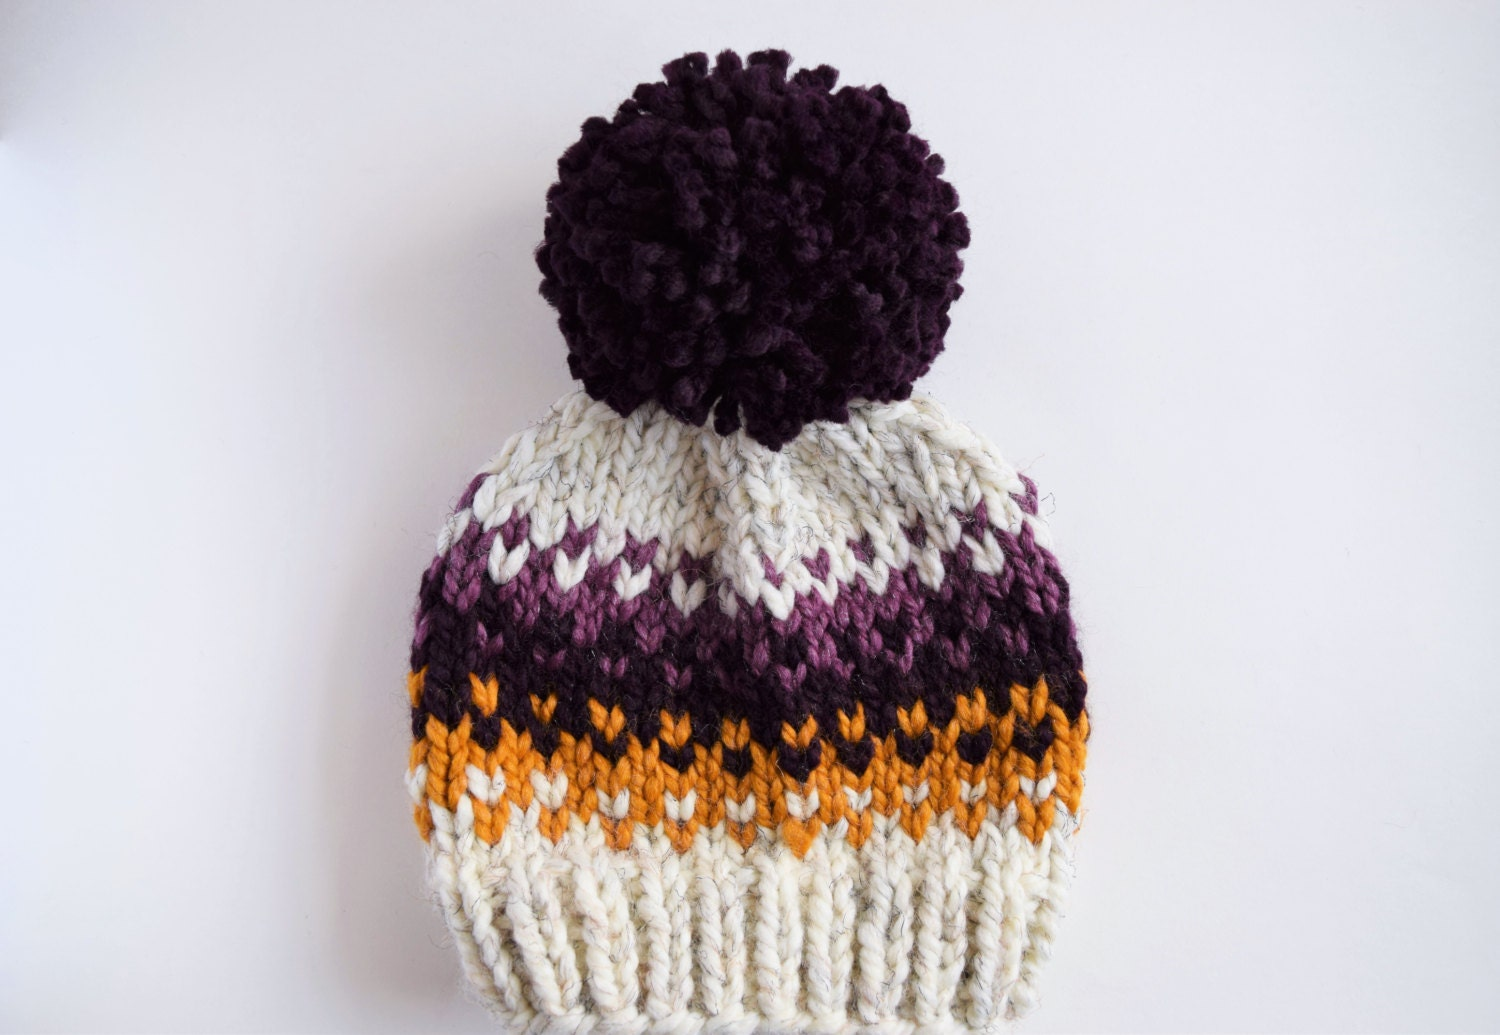 Nov 14,  · Give a hat a playful makeover with pom-poms—no sewing or knitting required! We are deeply in love with pom-poms, so we covered the whole hat for a colorful floral look. If you want something a bit more subtle, try adding a grouping of three pom-pom flowers to one side of the hat instead! Start by Author: Handmade Charlotte.